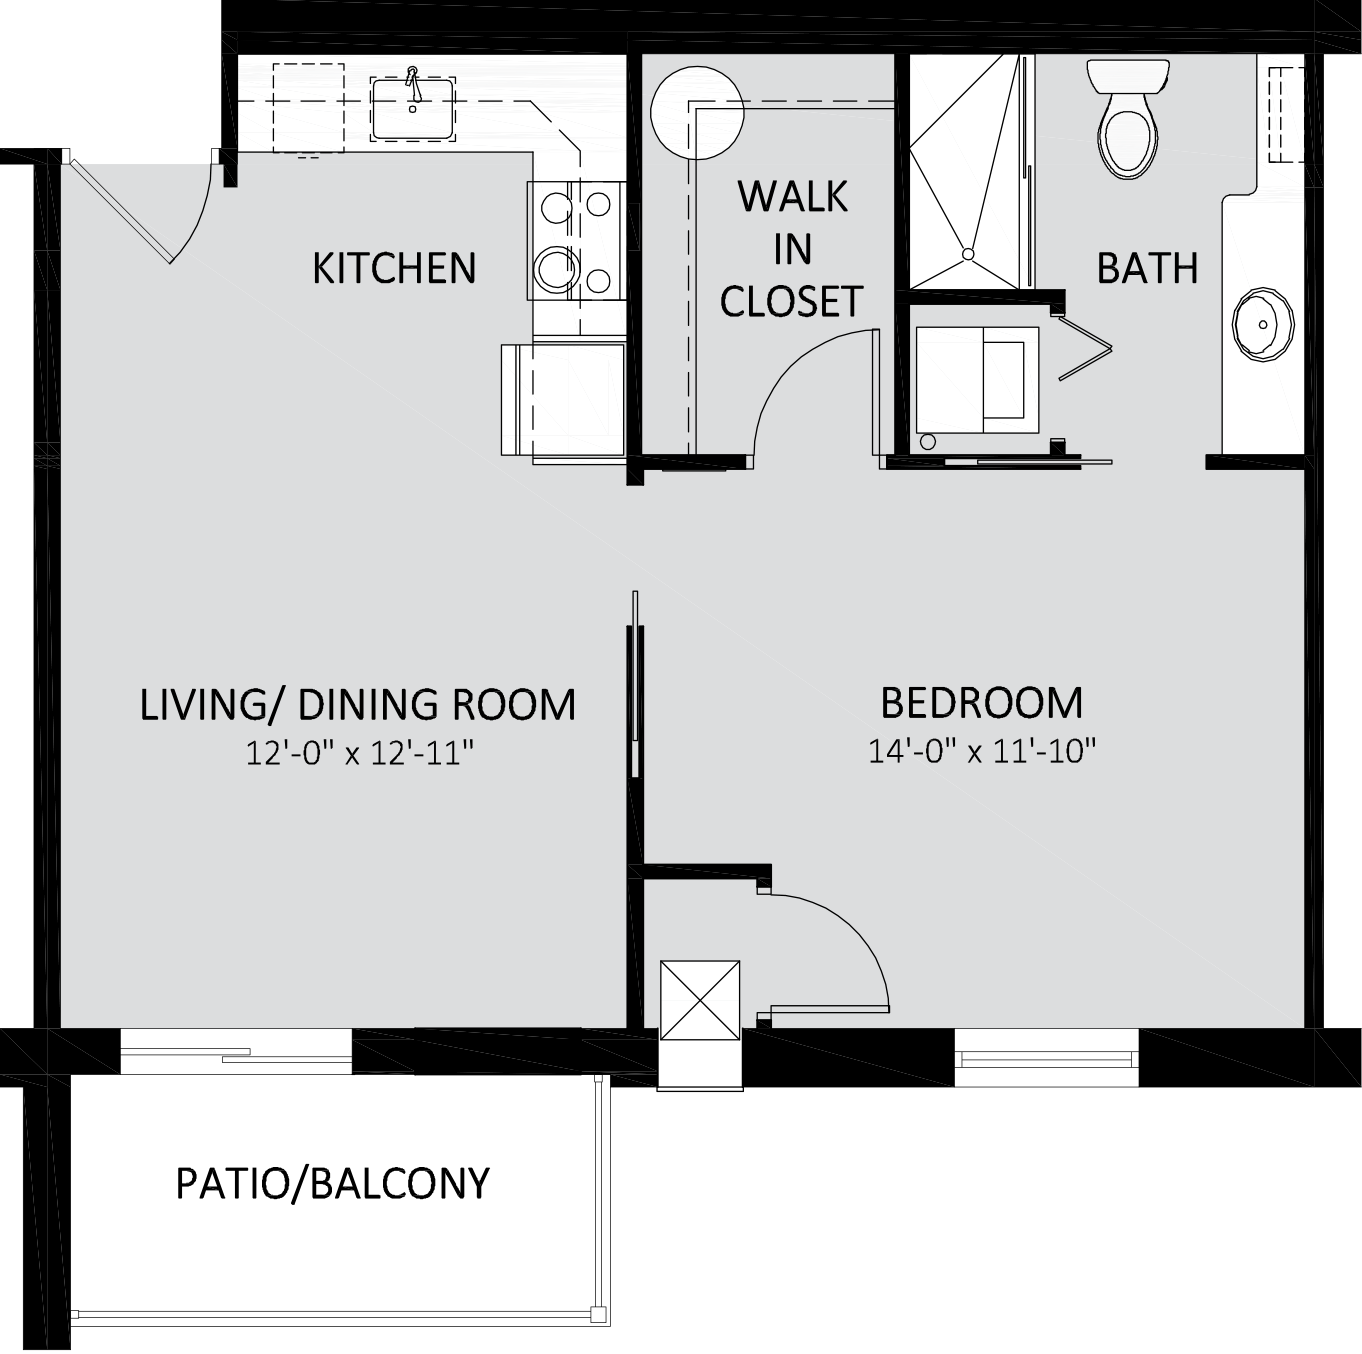 NFE Freedom Contemporary II One Bedroom 538 Sq Ft.png